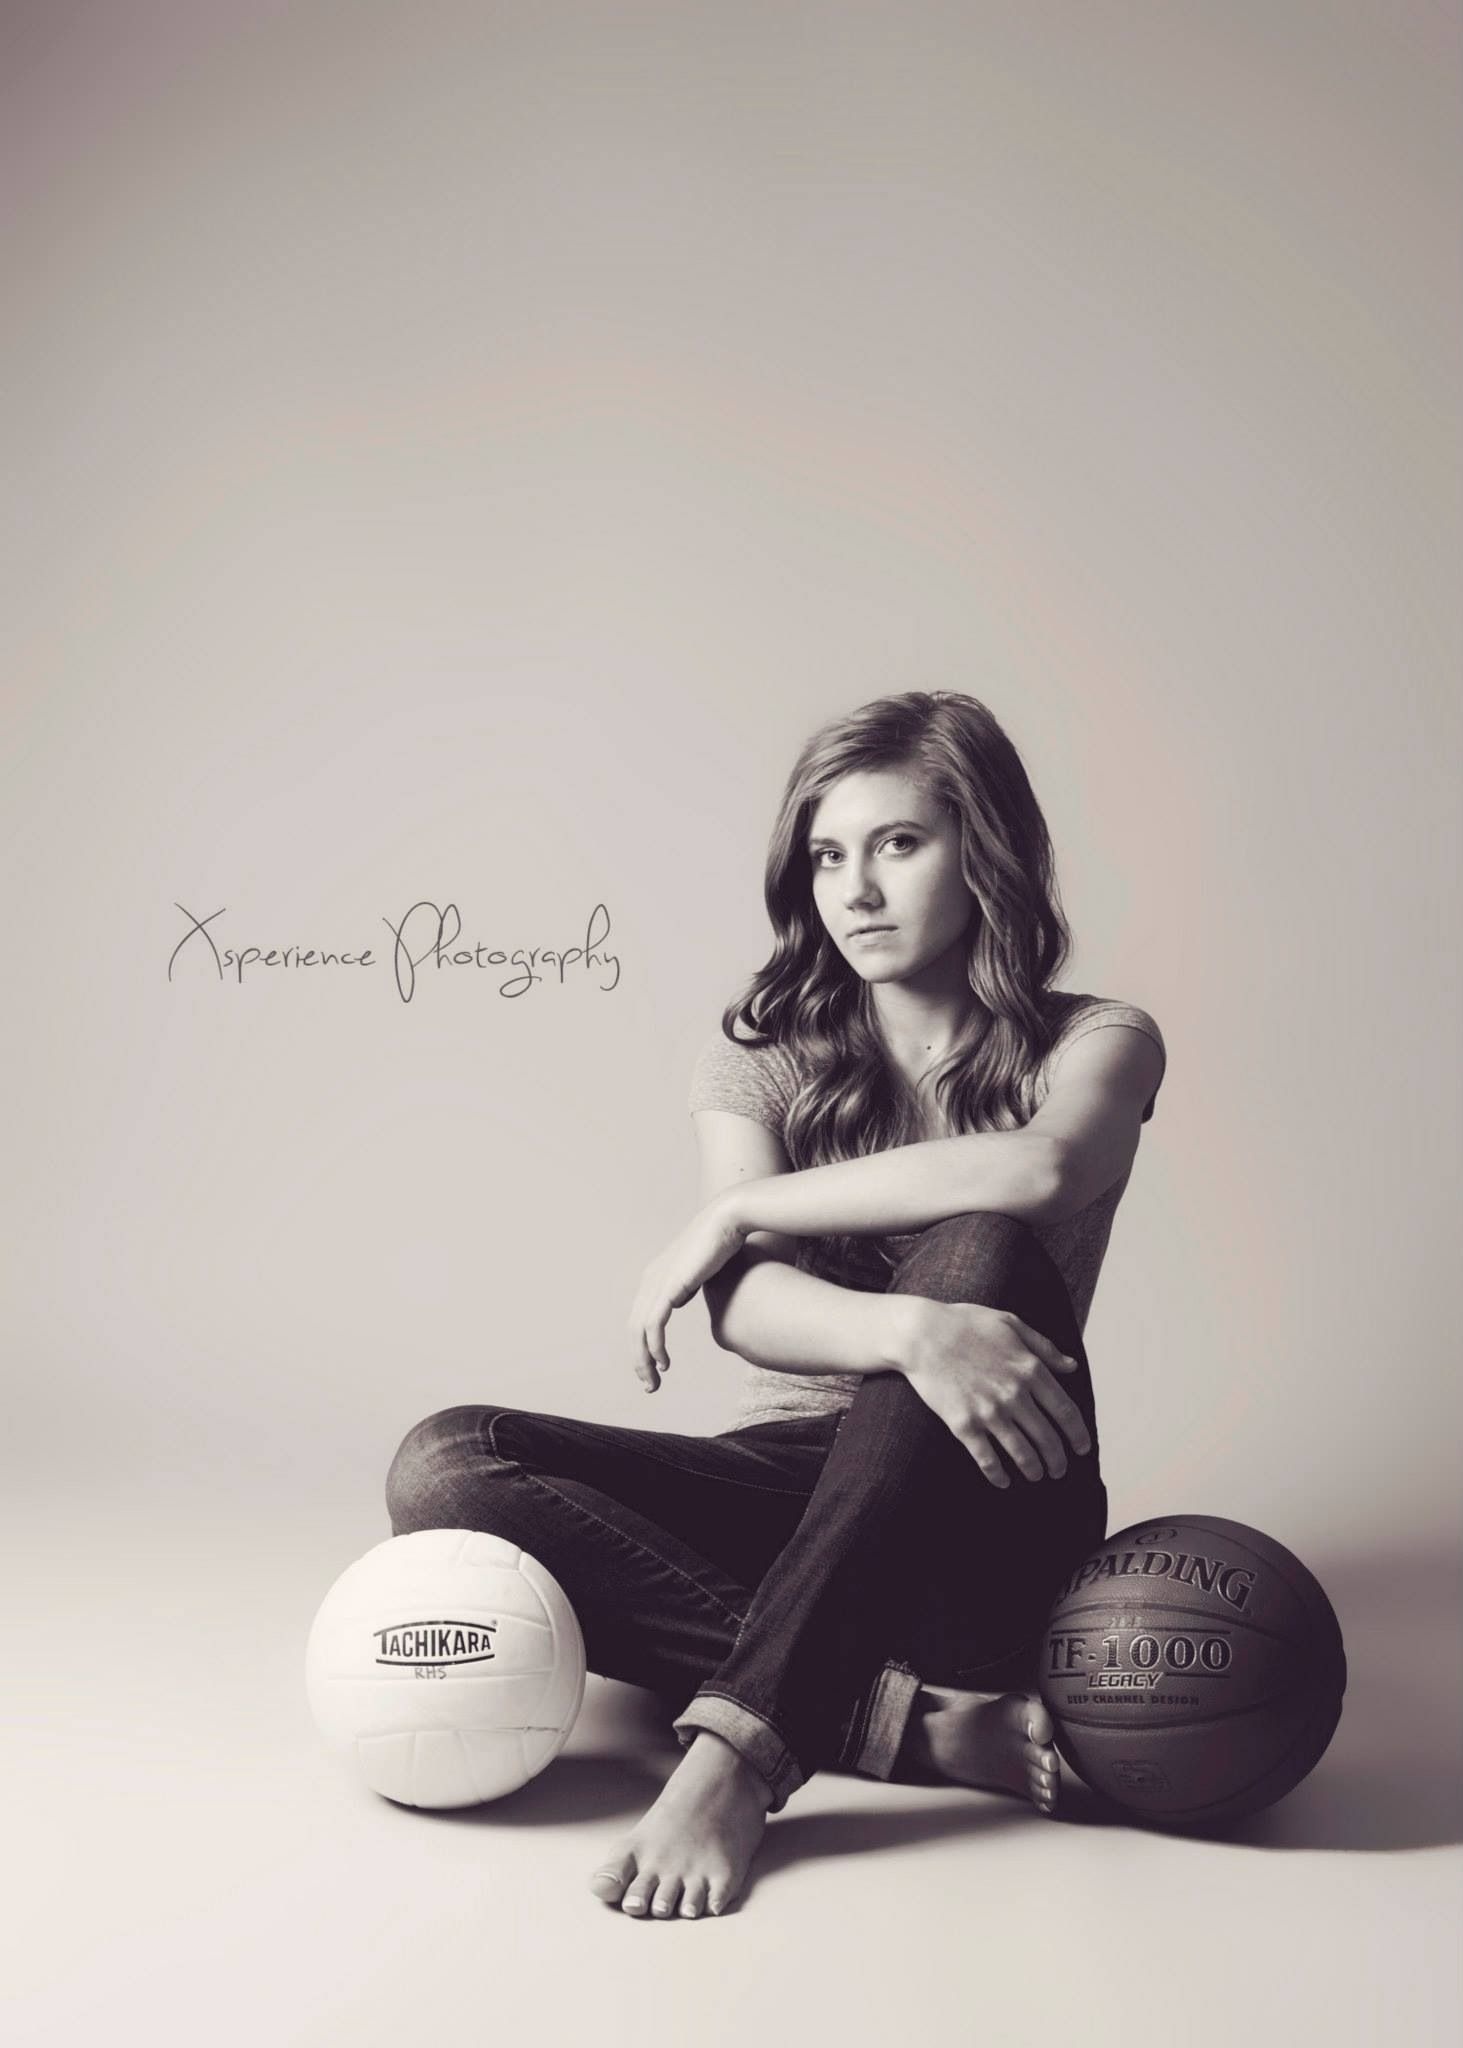 Pin By Everyday People Studios On Graduation Senior Photography Volleyball Senior Pictures Basketball Senior Pictures Girl Senior Pictures